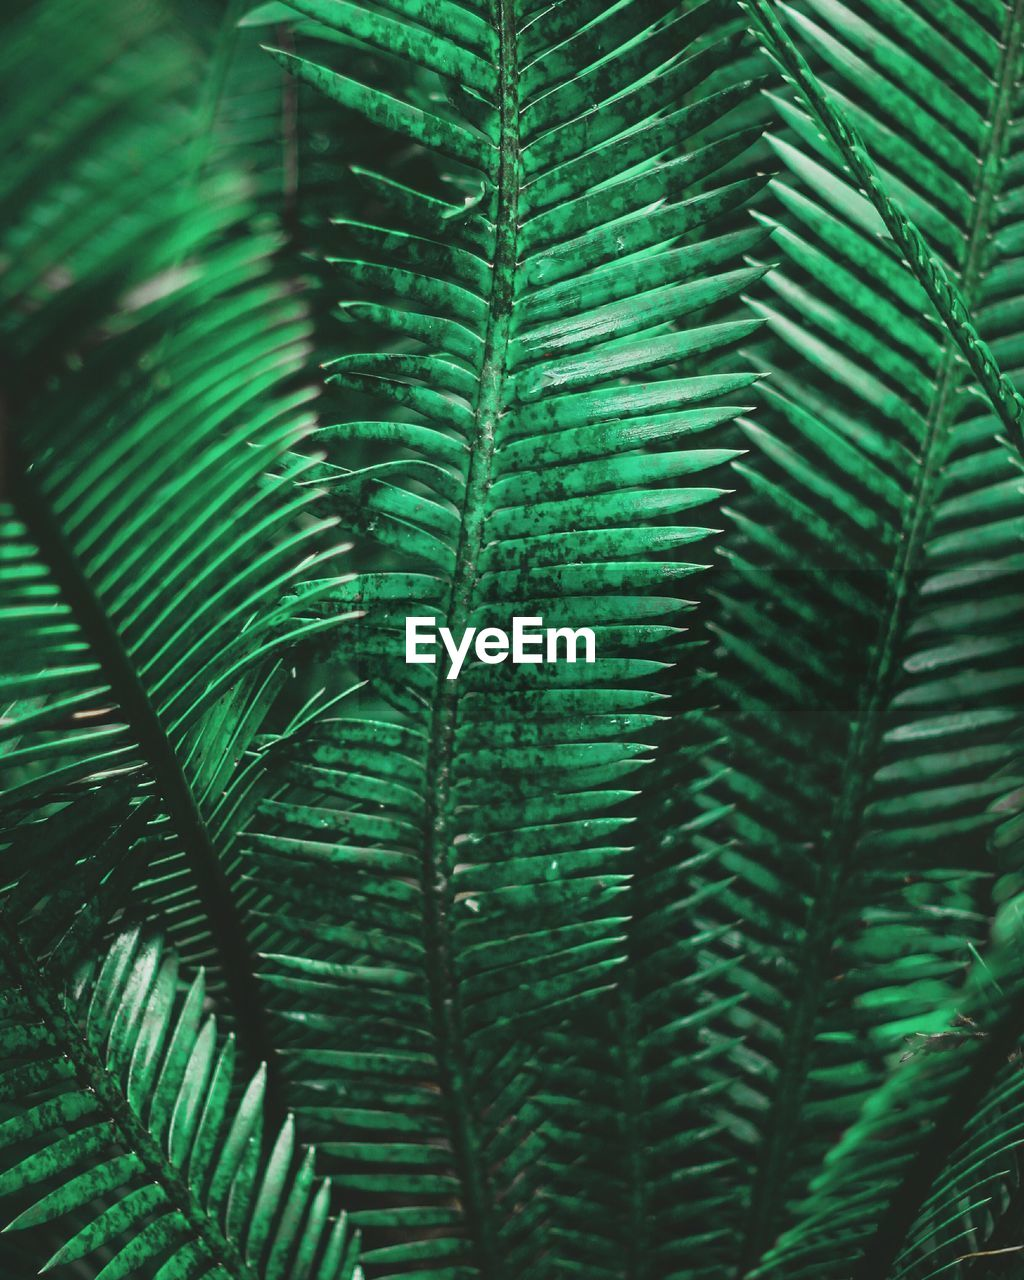 green color, leaf, growth, plant part, plant, fern, nature, close-up, day, no people, beauty in nature, frond, full frame, backgrounds, freshness, tree, palm leaf, palm tree, outdoors, natural pattern, leaves